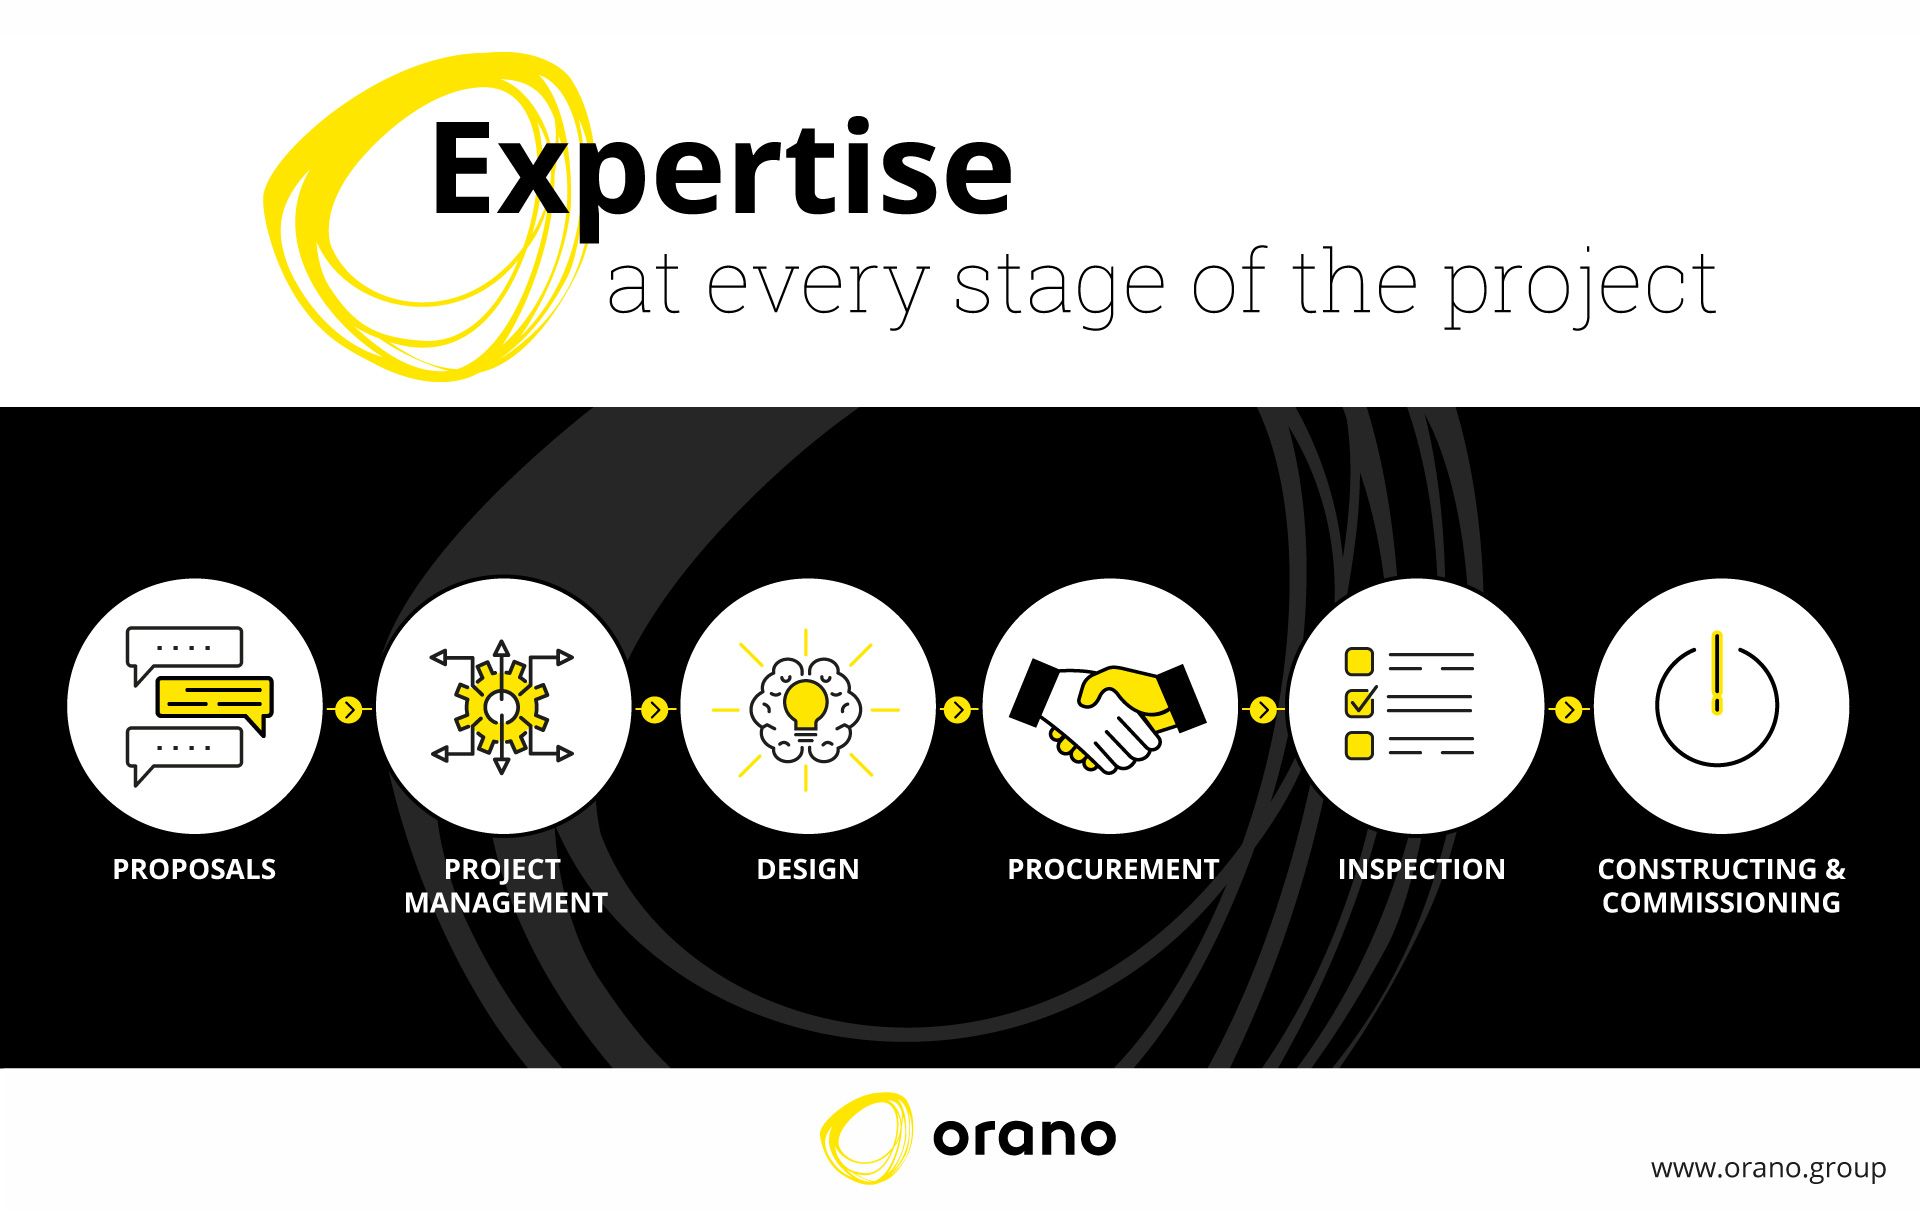 Orano Projects' services range from support engineering for operators to comprehensive EPCM (Engineering, Procurement, Construction, Management) responsibilities